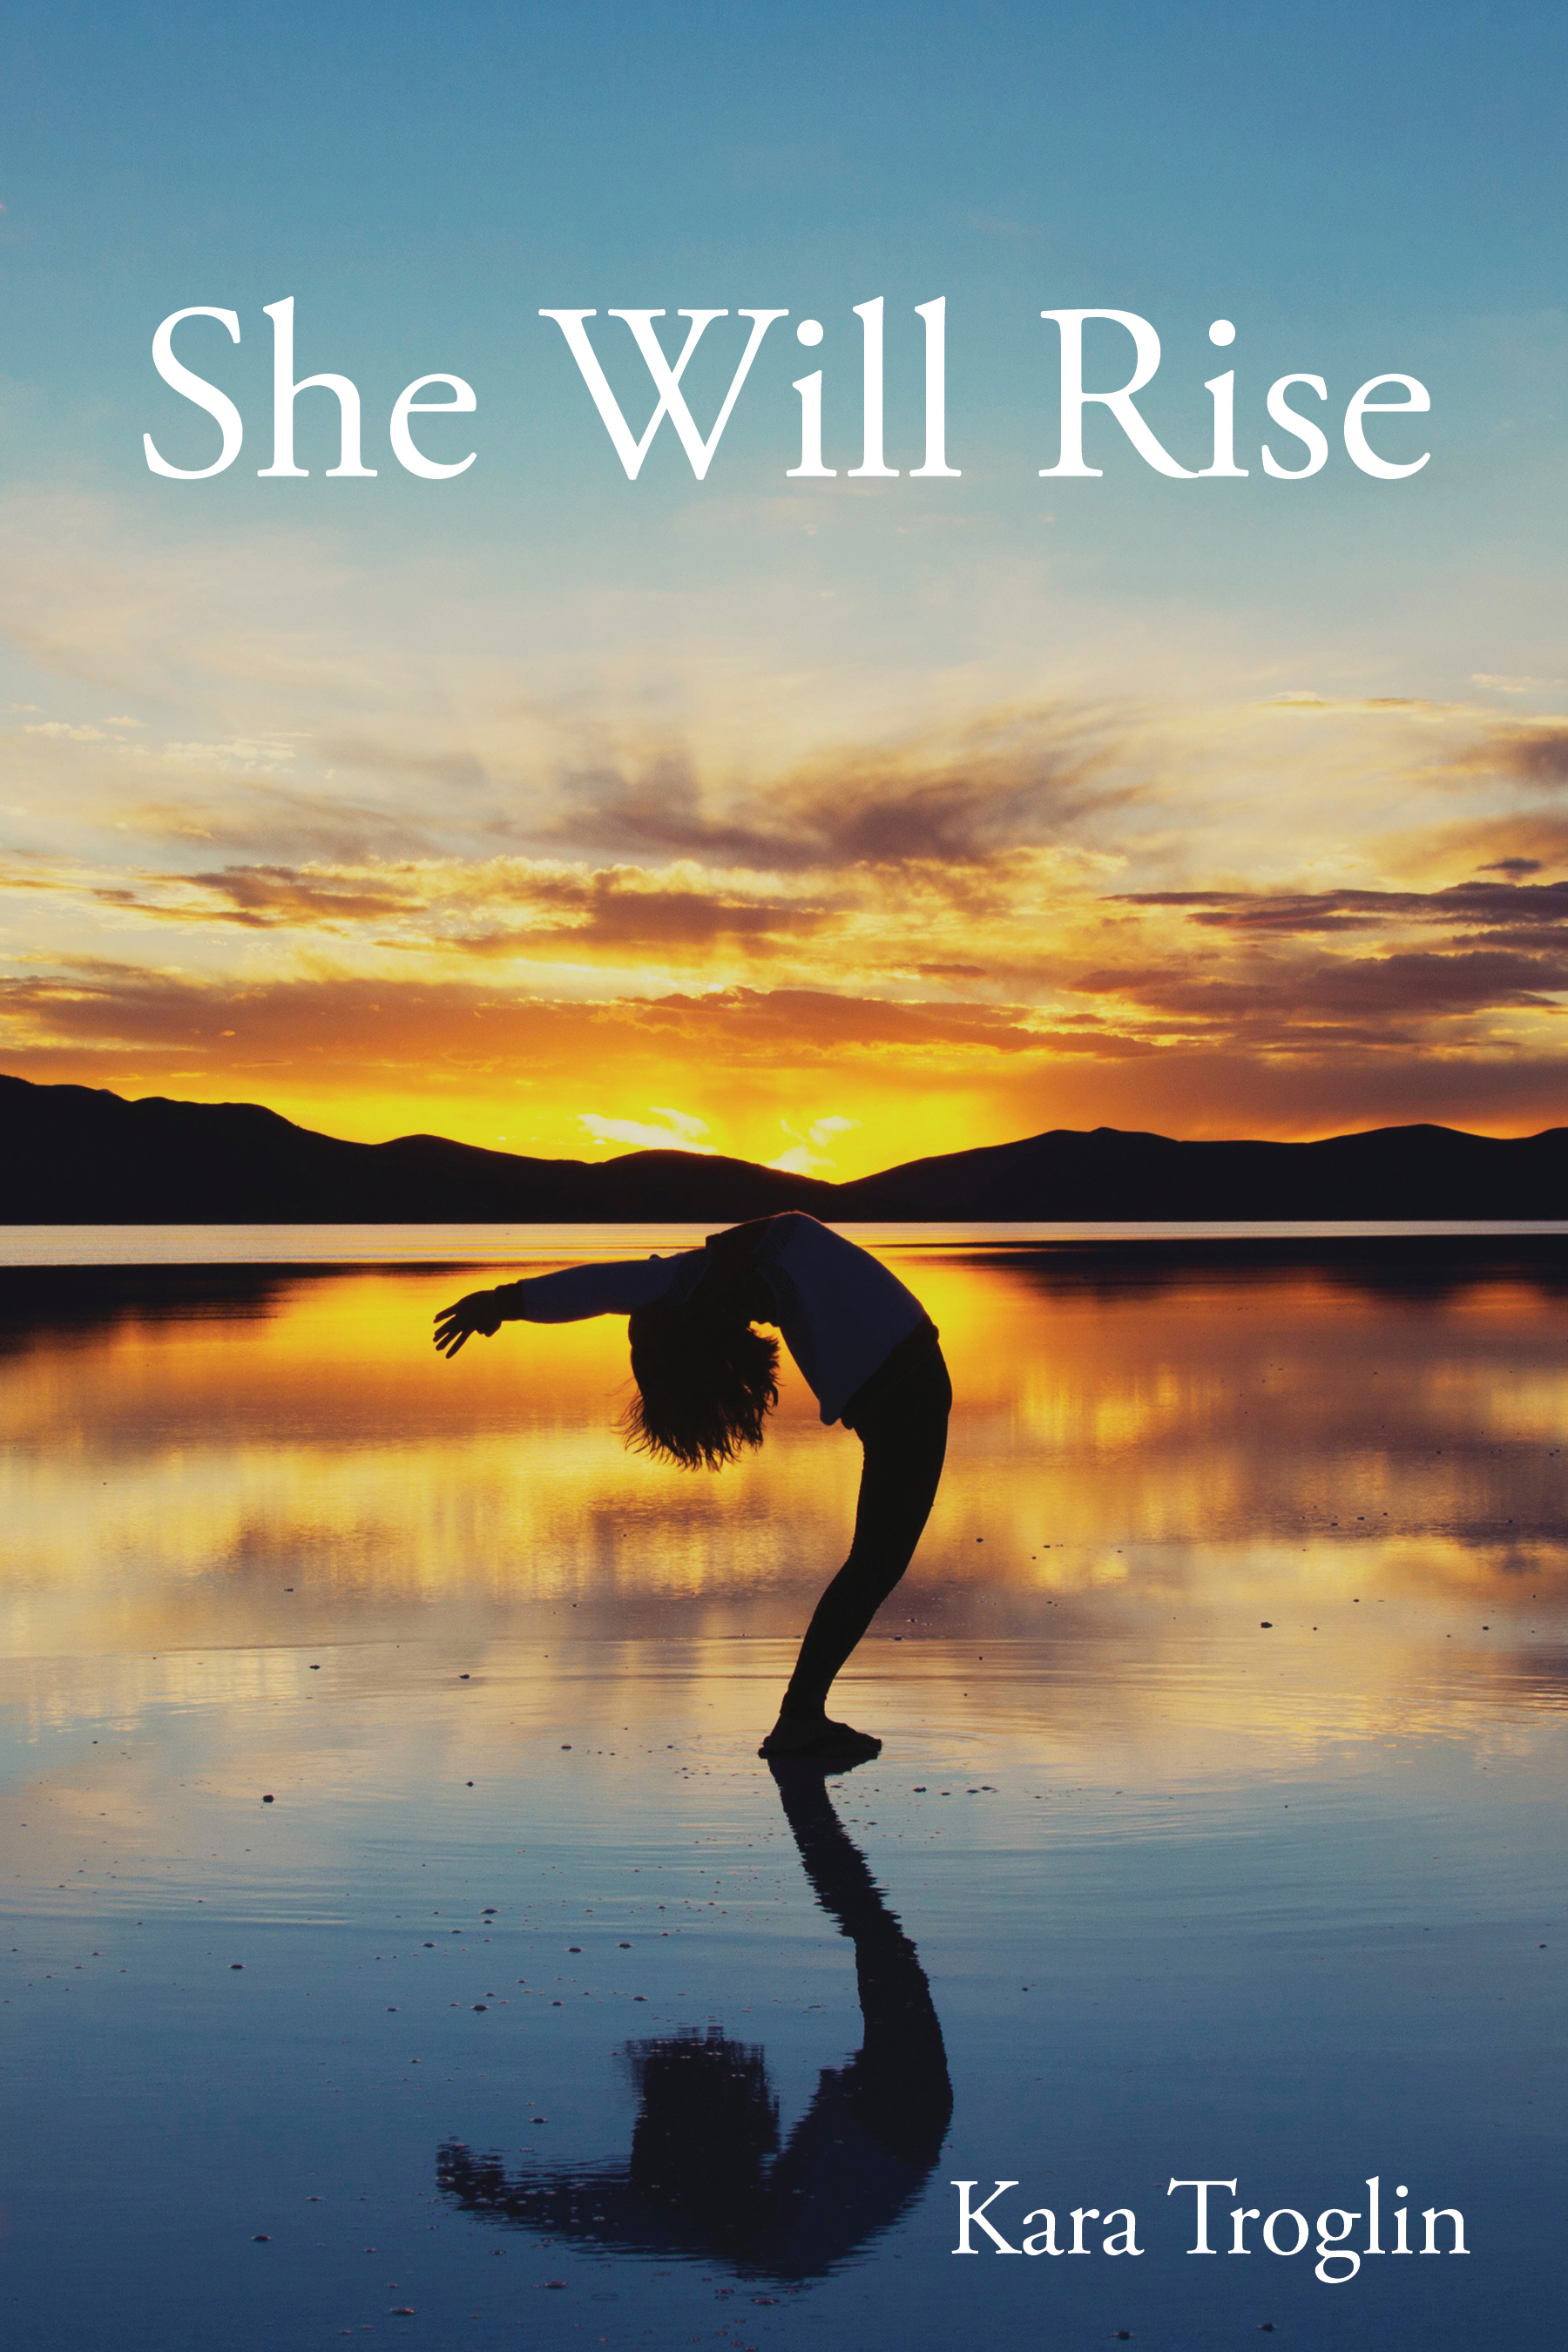 She Will Rise by Kara Troglin